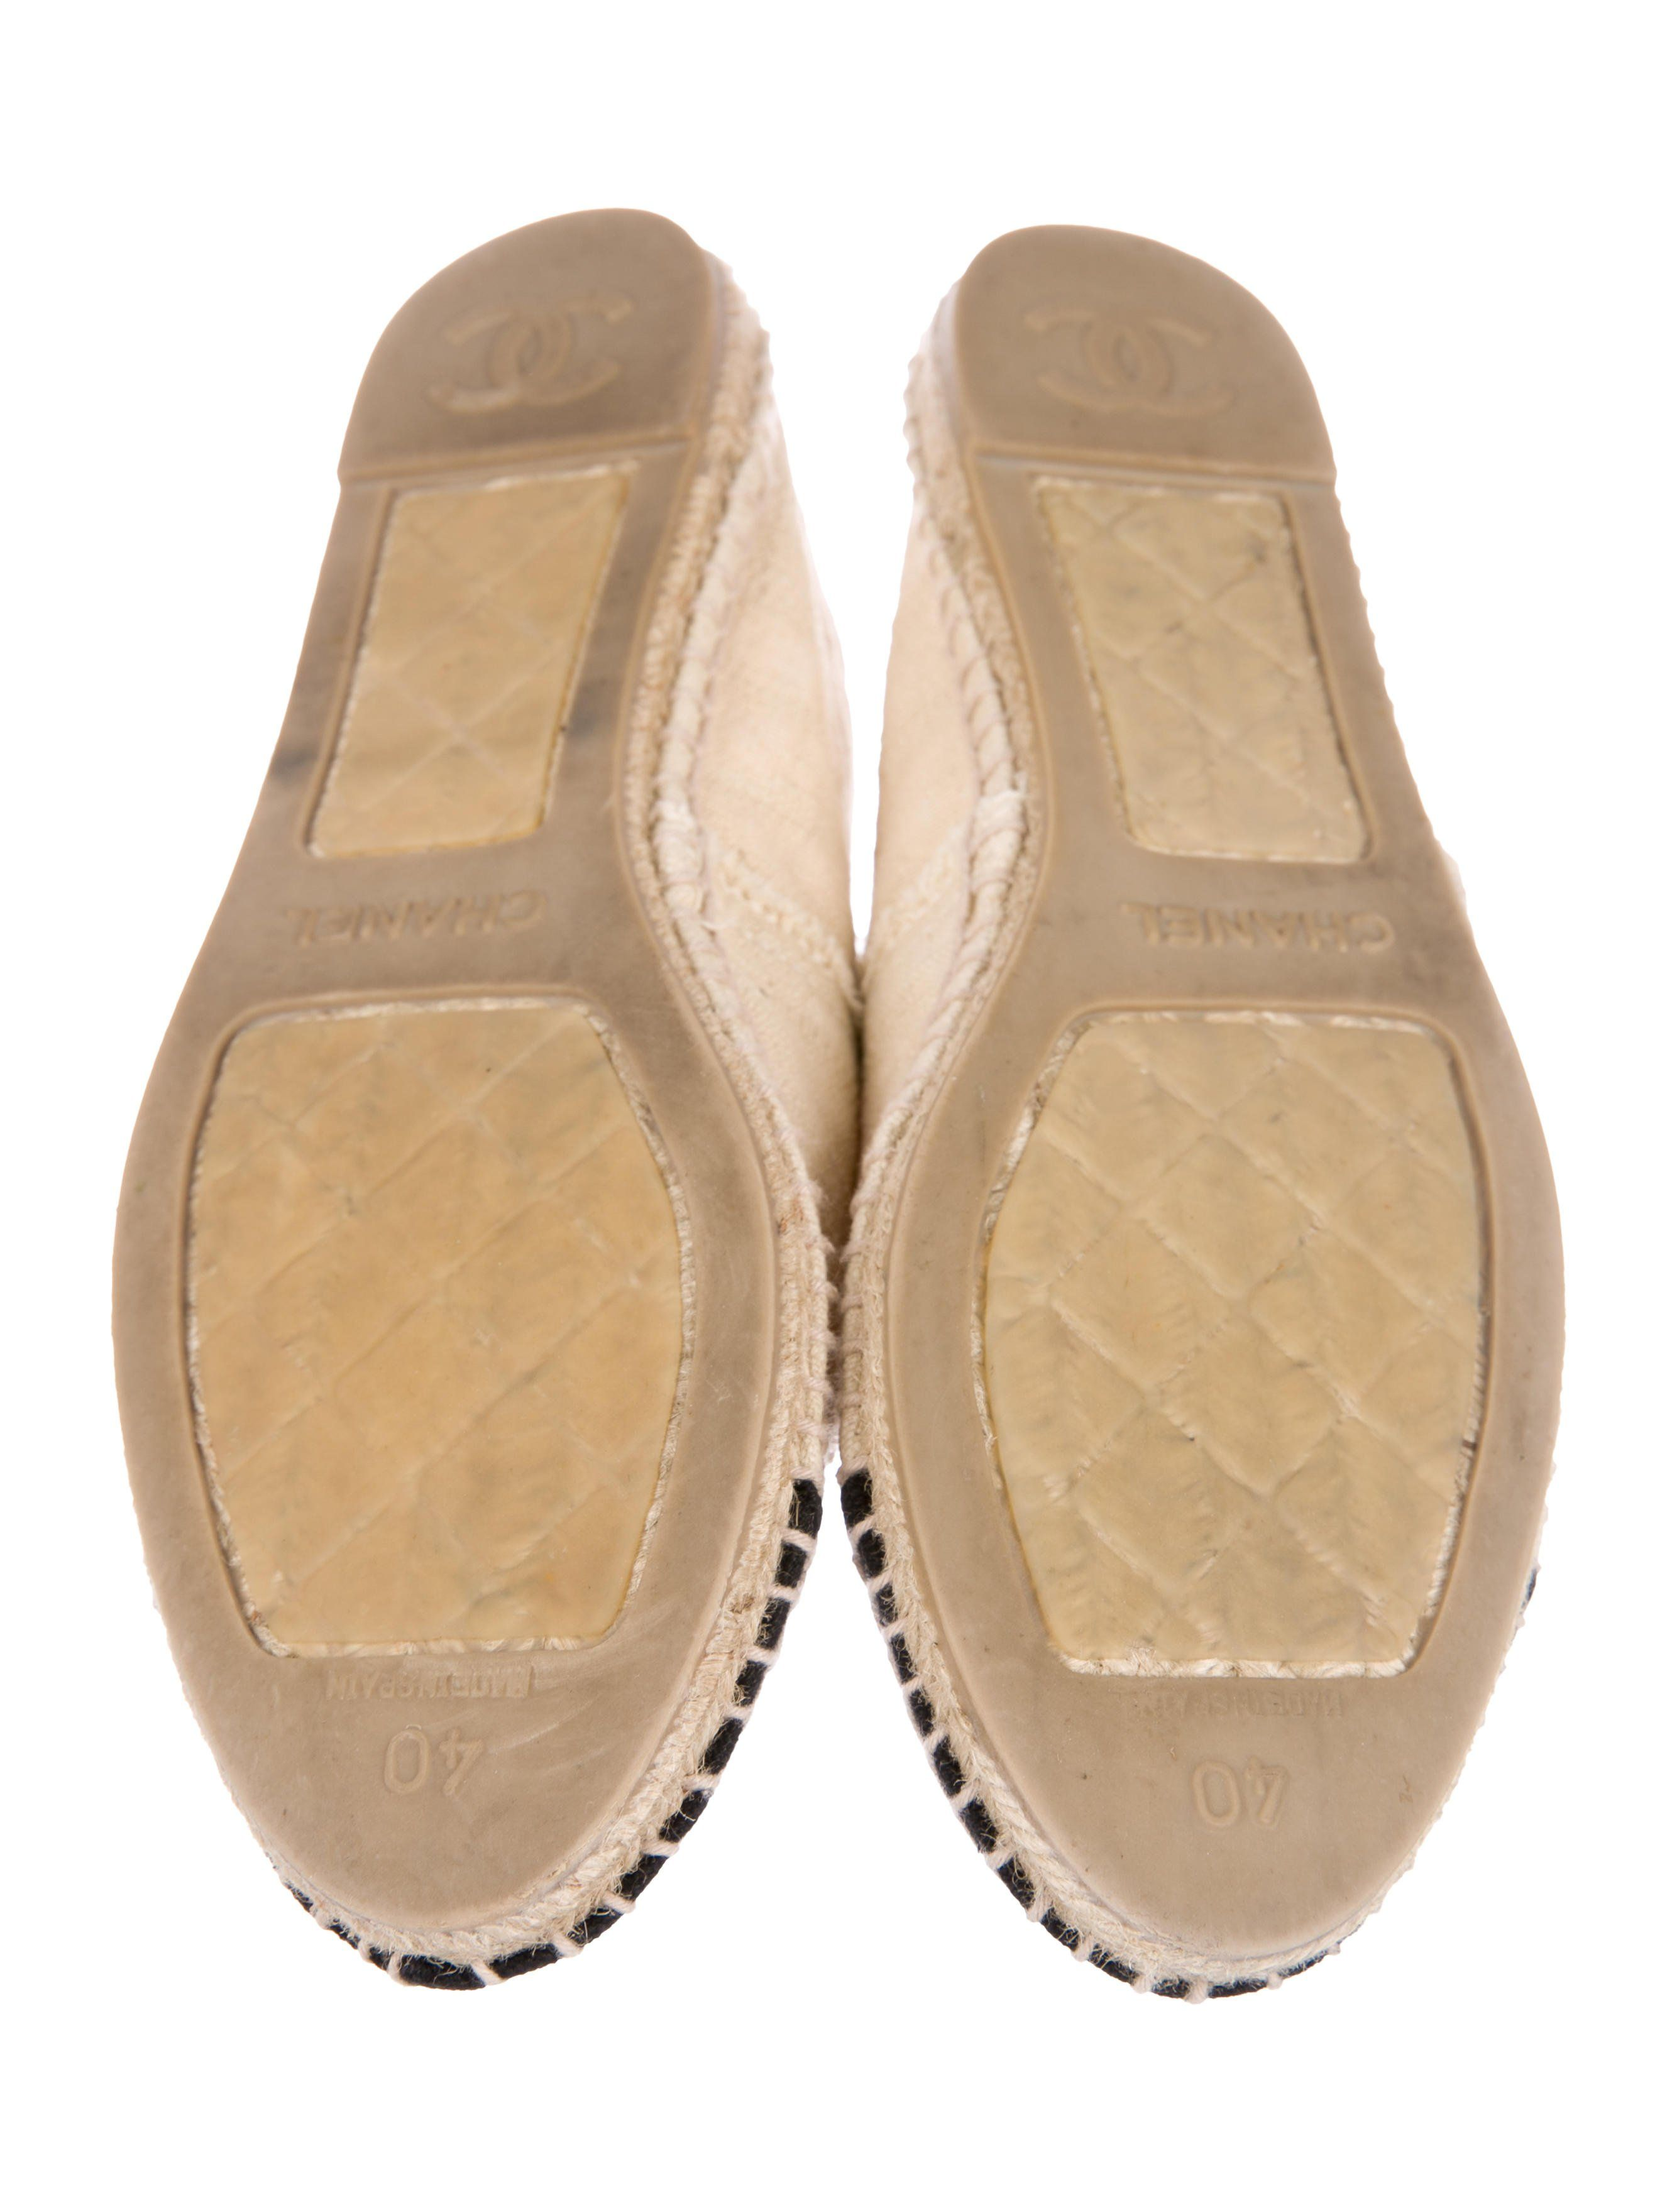 a0906ddff75 Beige and black canvas Chanel espadrille flats with round toes, CC ...